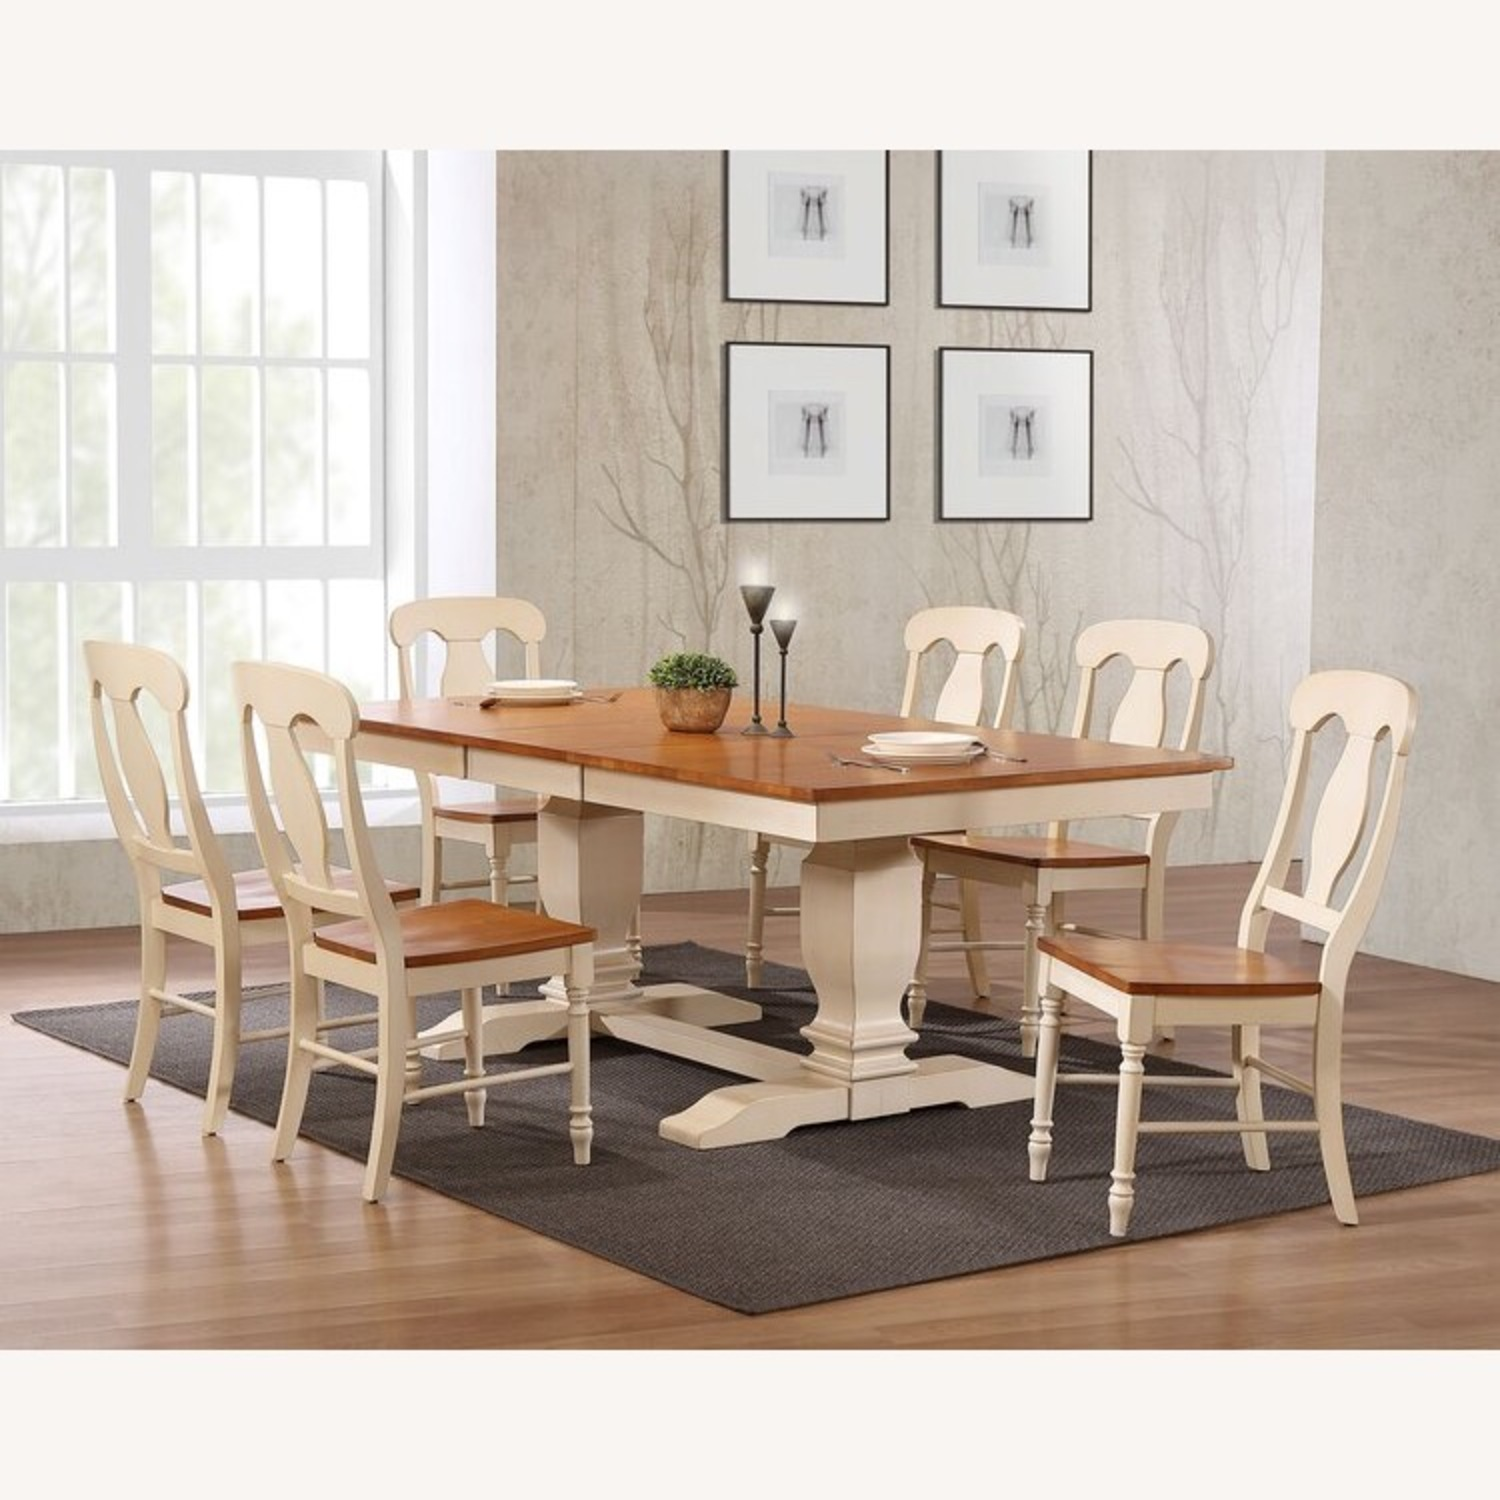 Dinettestyles Solid Wood Extension Dinnig Set - image-2